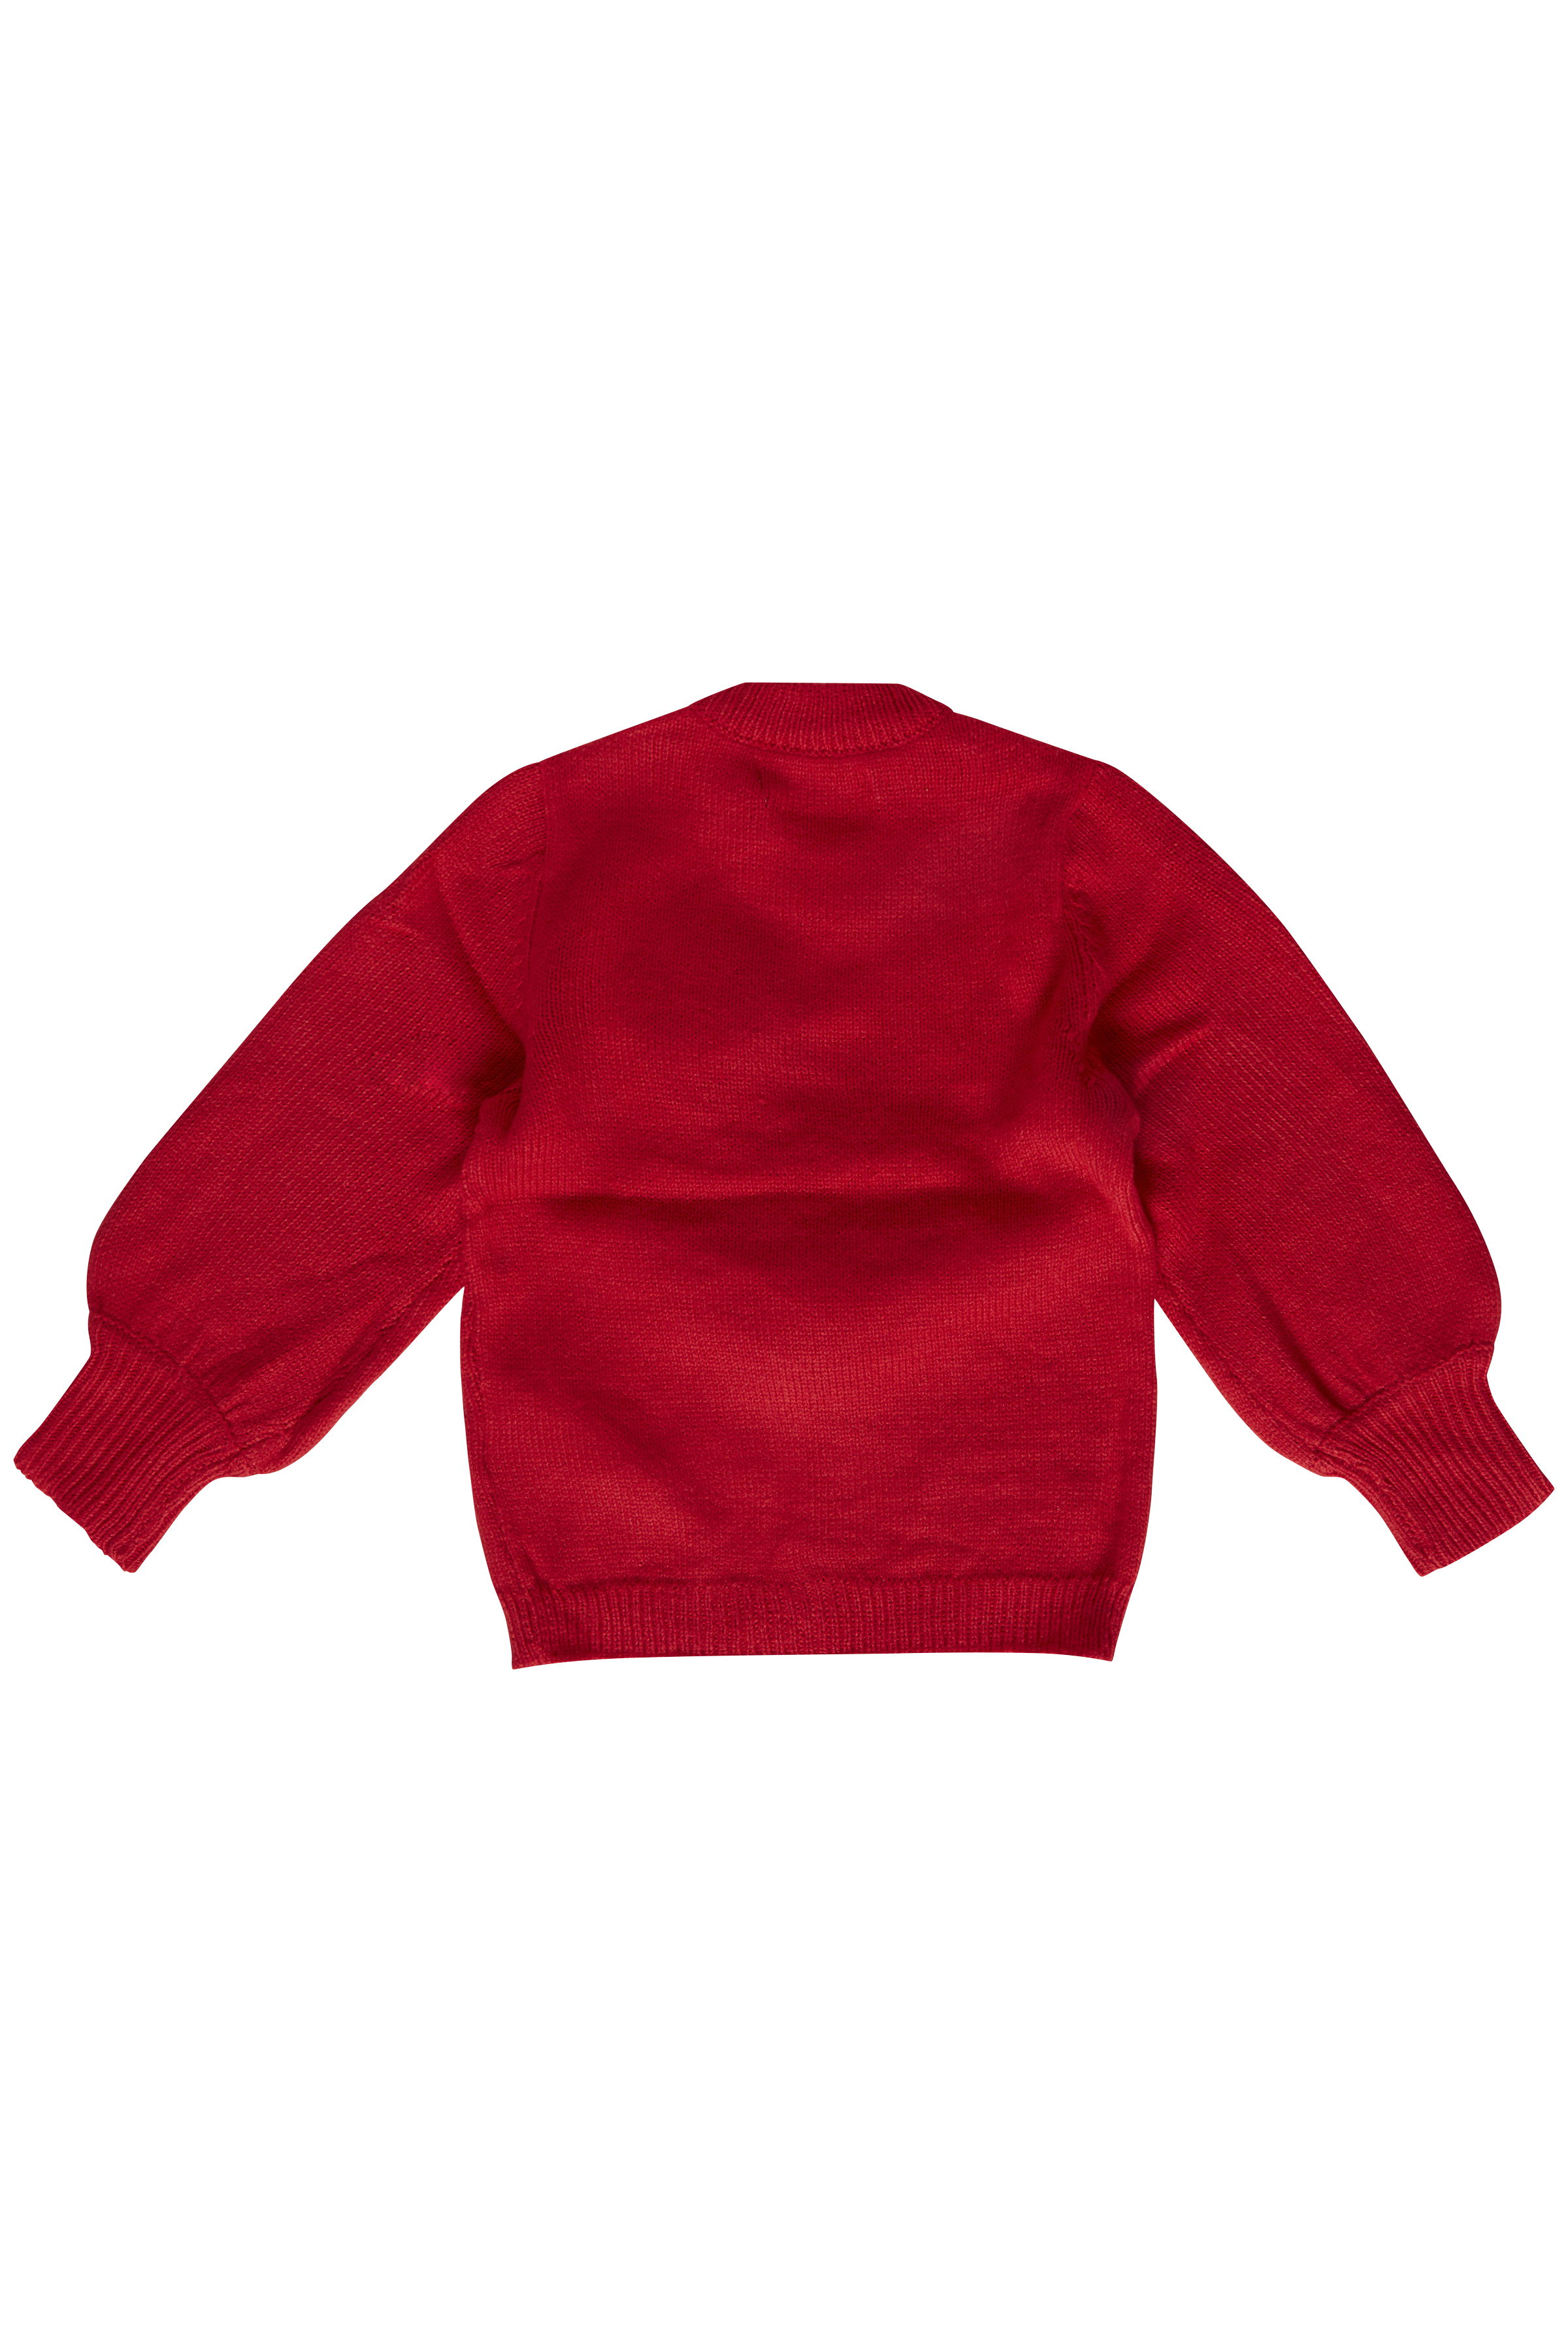 Chinese Red combi 2 Strikpullover fra b.young – Køb Chinese Red combi 2 Strikpullover fra str. 92-134/140 her